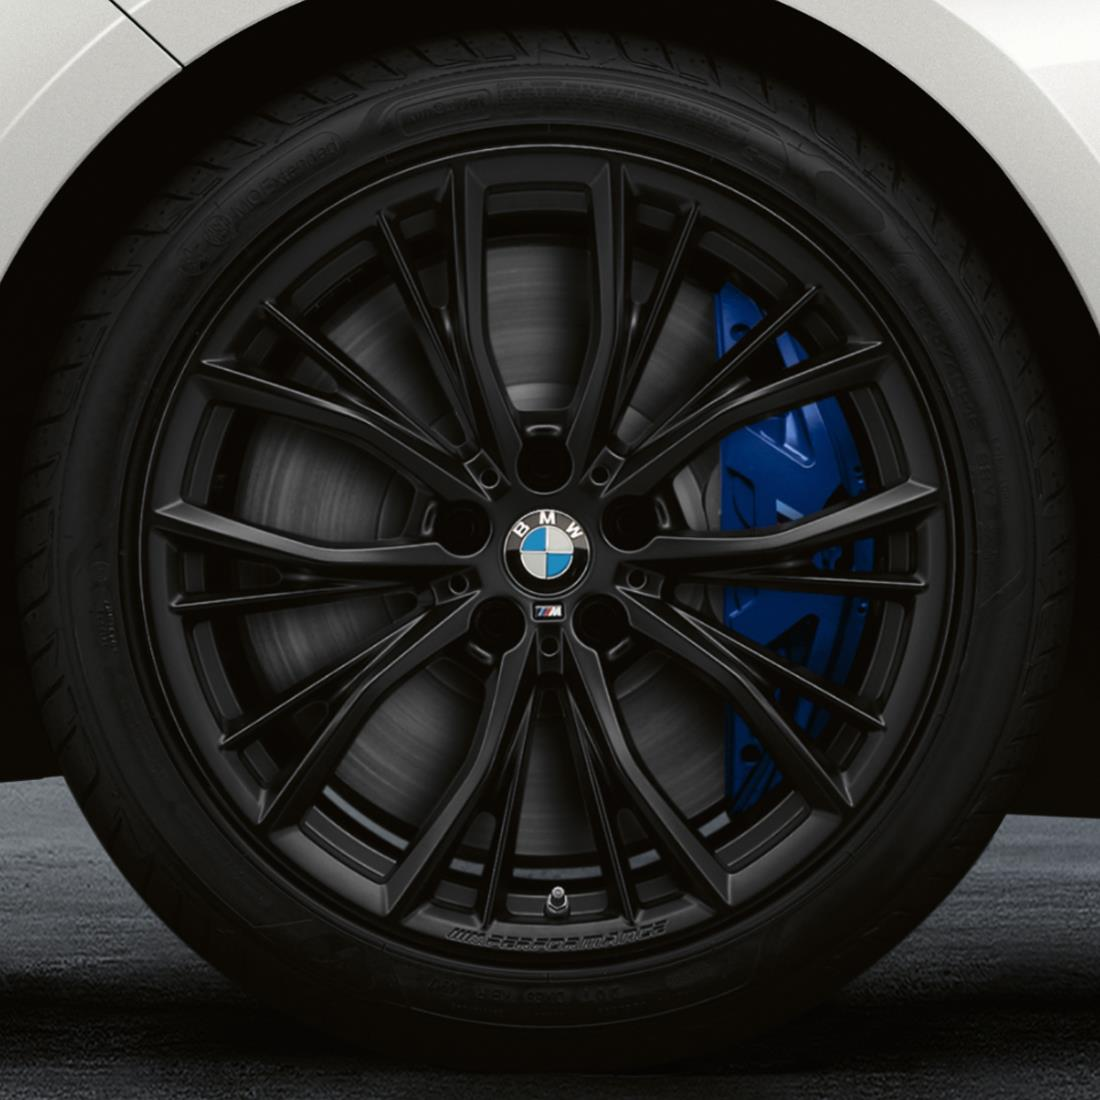 BMW 19-Inch M Performance Double-spoke 786M Complete Performance Wheel and Tire Set - Jet Black Matte